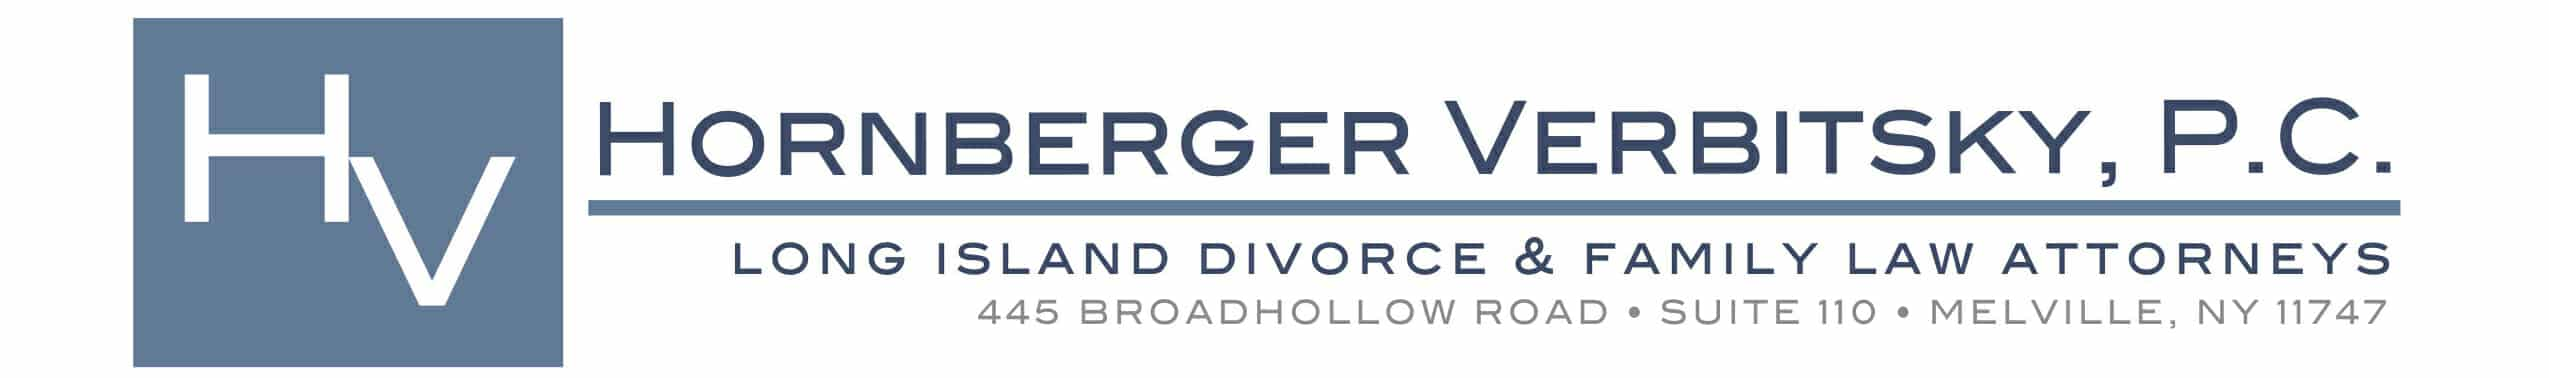 Hornberger Verbitsky, P.C., Long Island Divorce Attorney